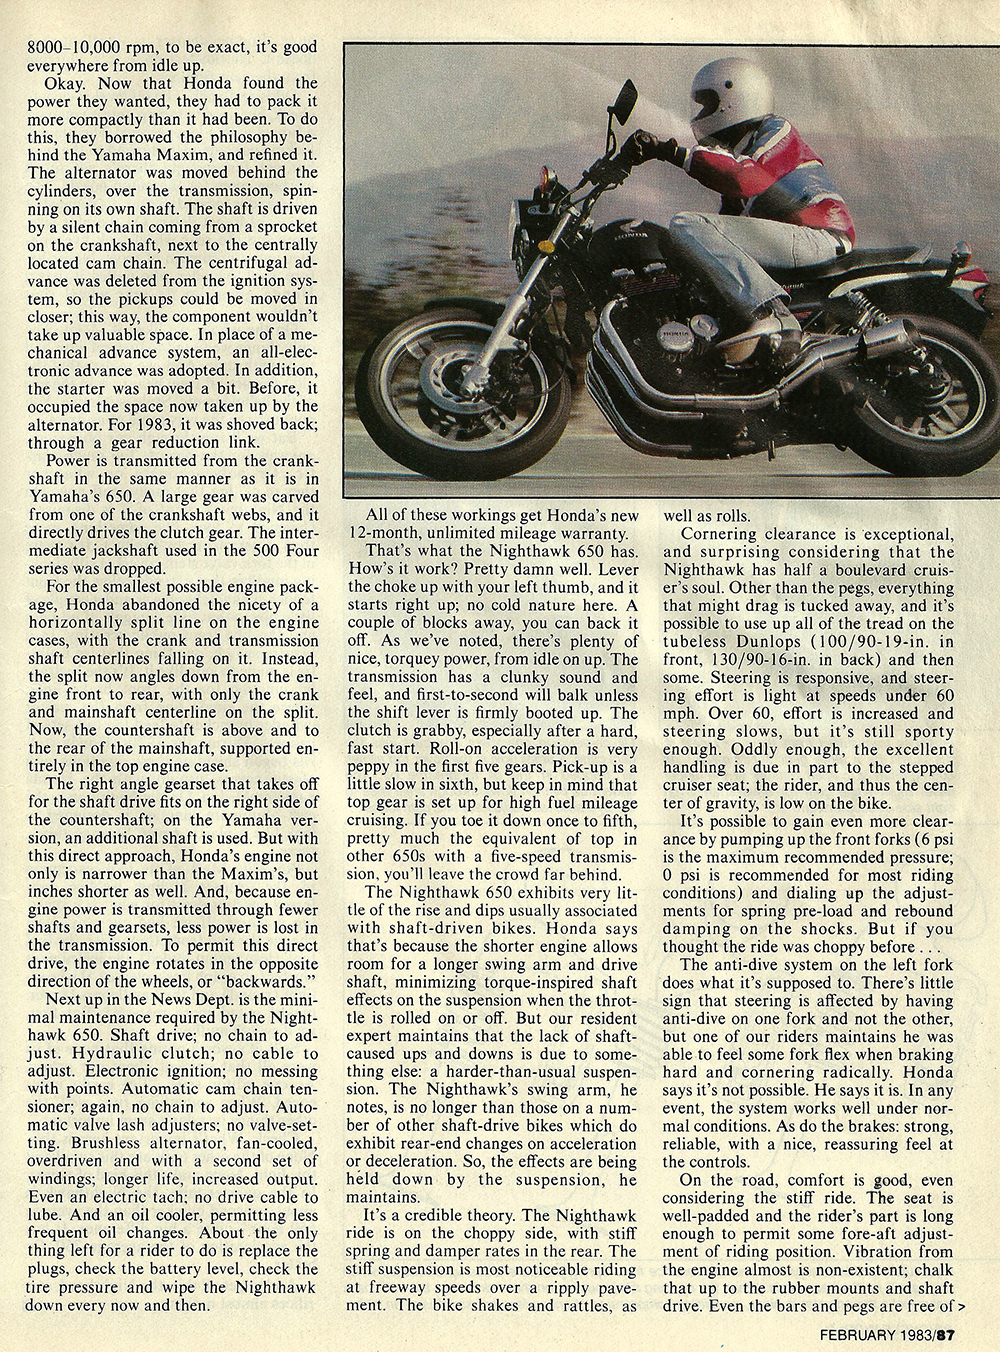 1983 Honda CB650SC Nighthawk road test 04.jpg